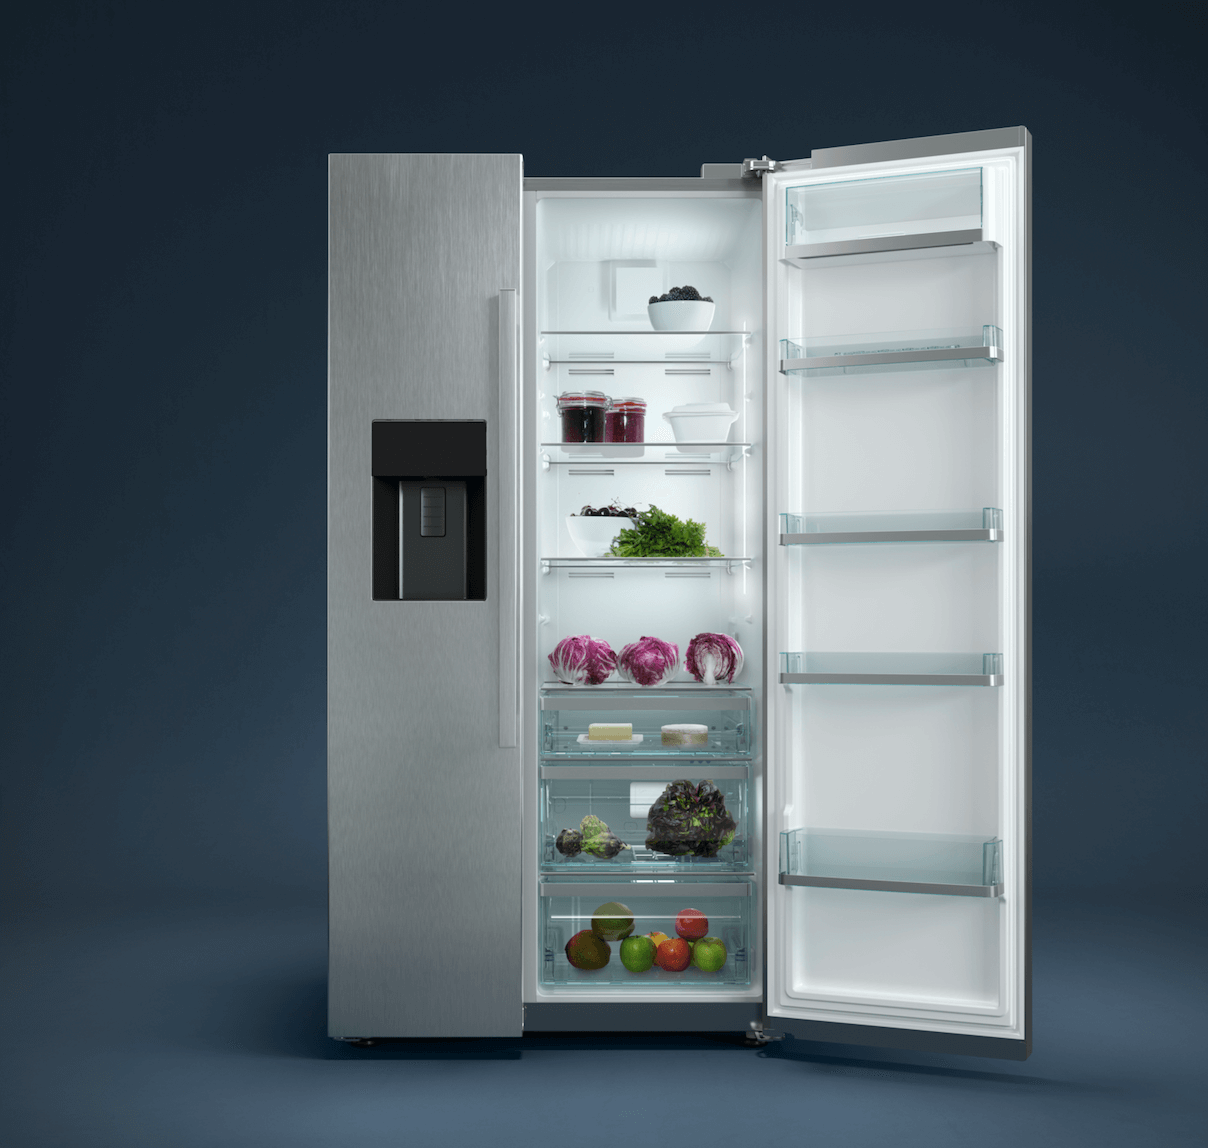 how to use refrigerator efficiently